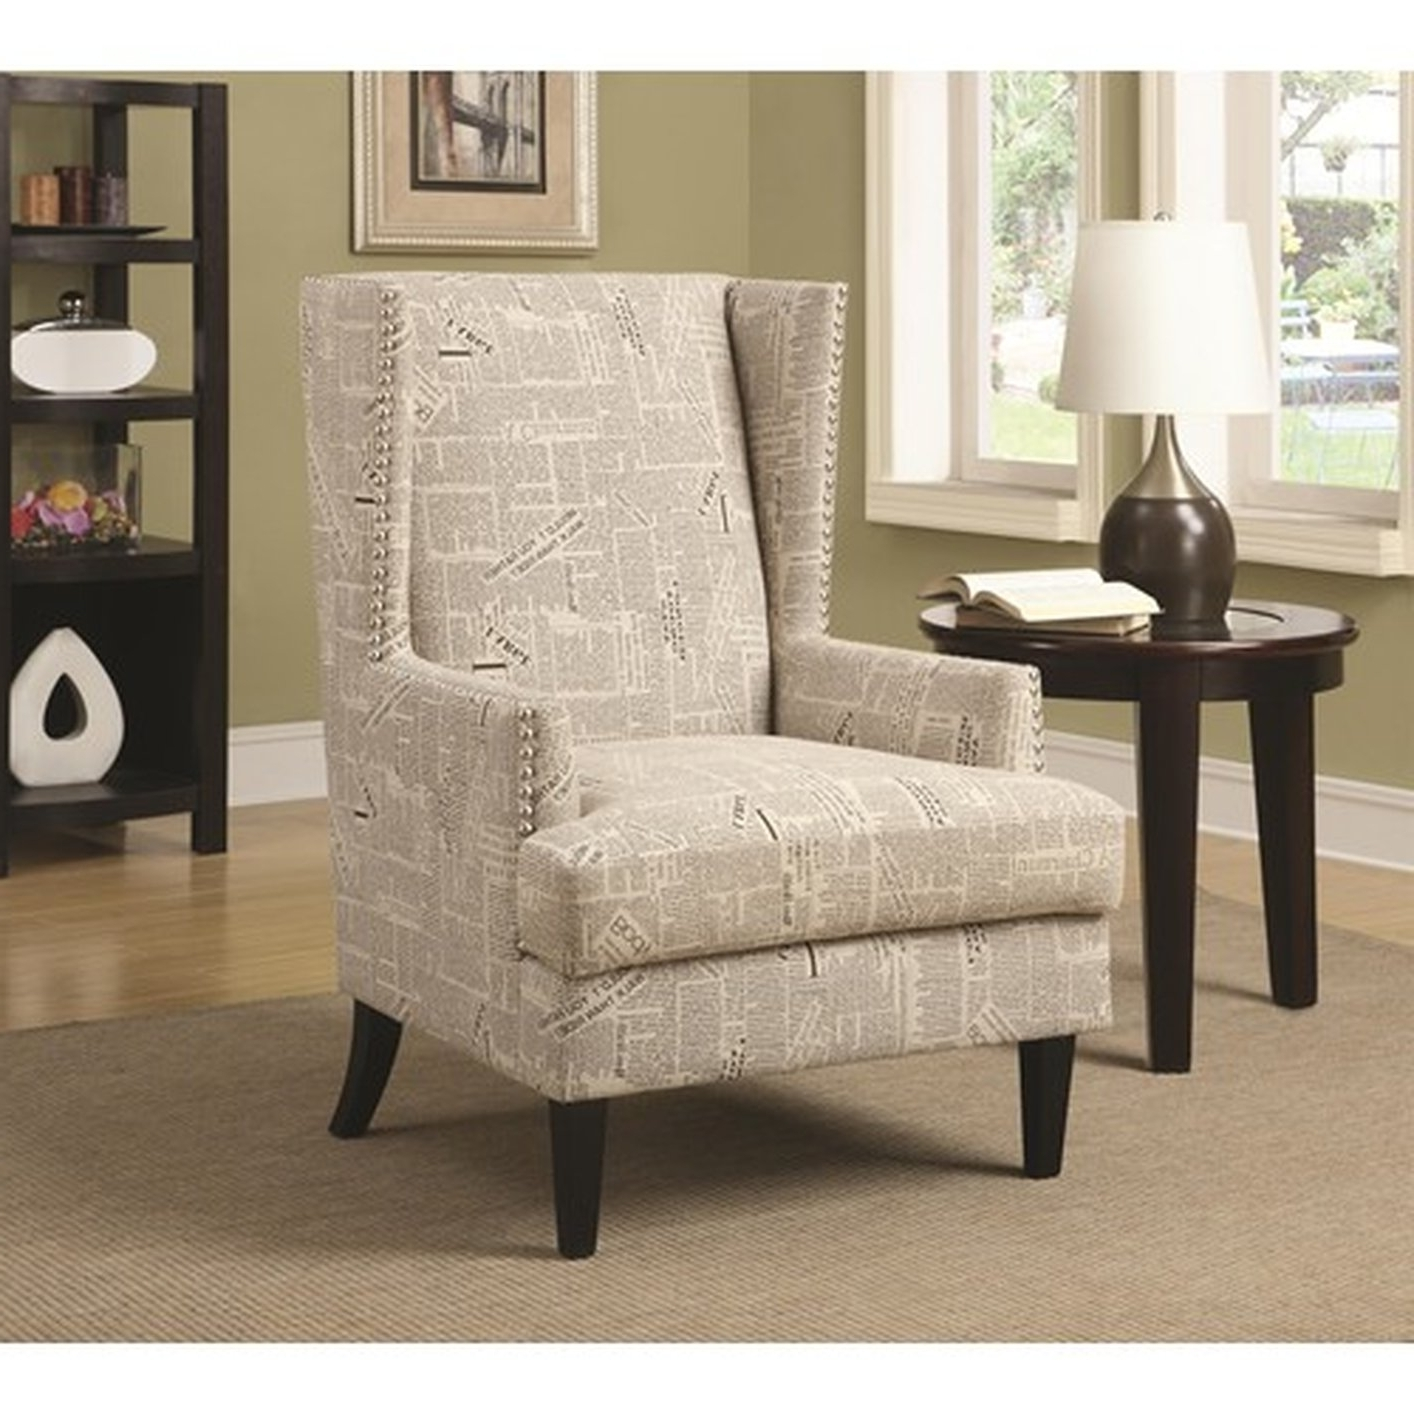 Accent Sofa Chairs Pertaining To Well Liked Accent Sofa Chair – House Decorations (View 7 of 15)